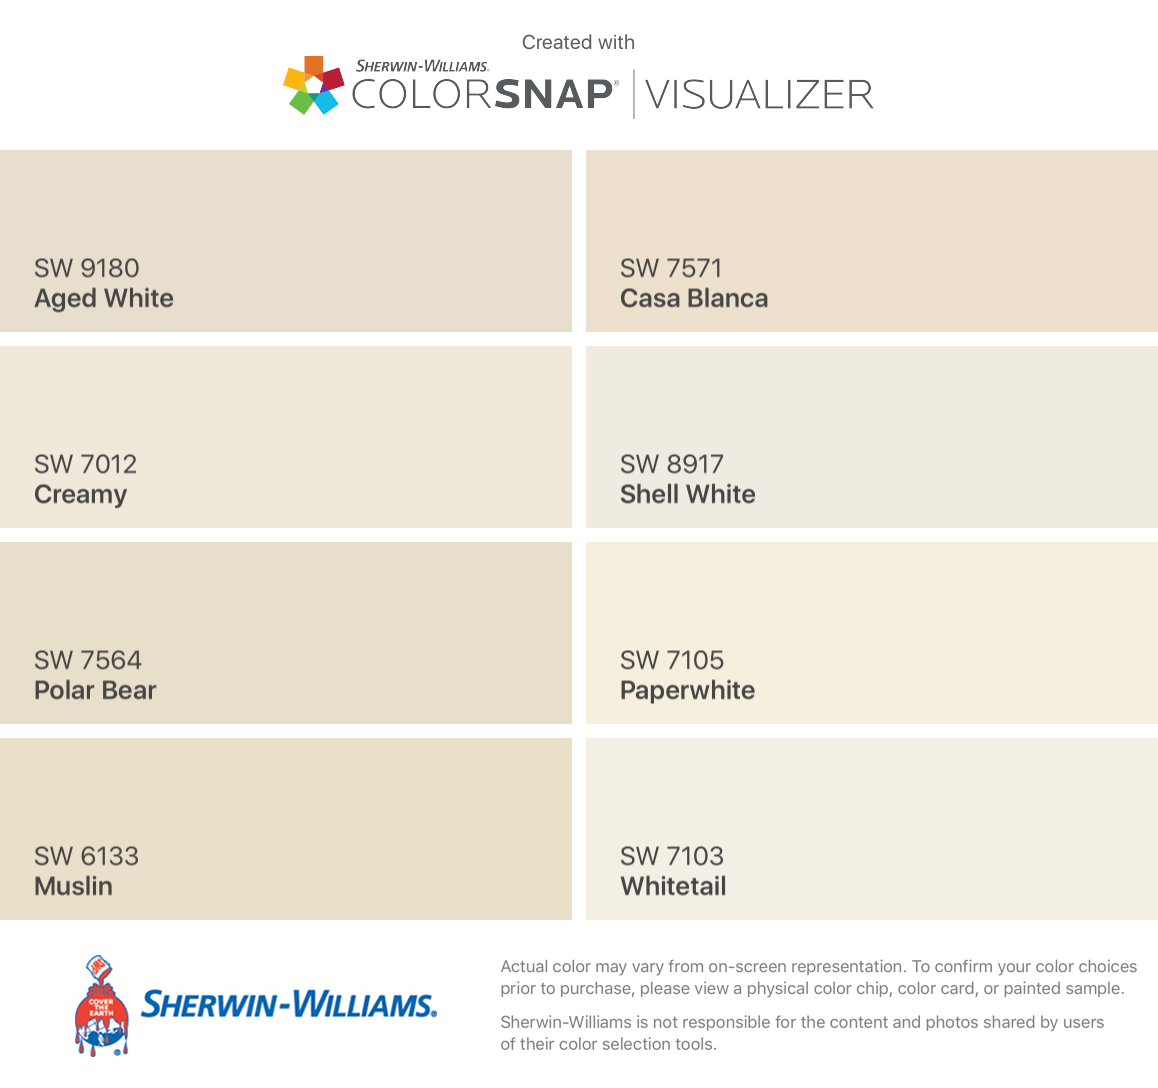 Found These Colors Colorsnap Visualizer For Iphone Sherwin Williams Aged White